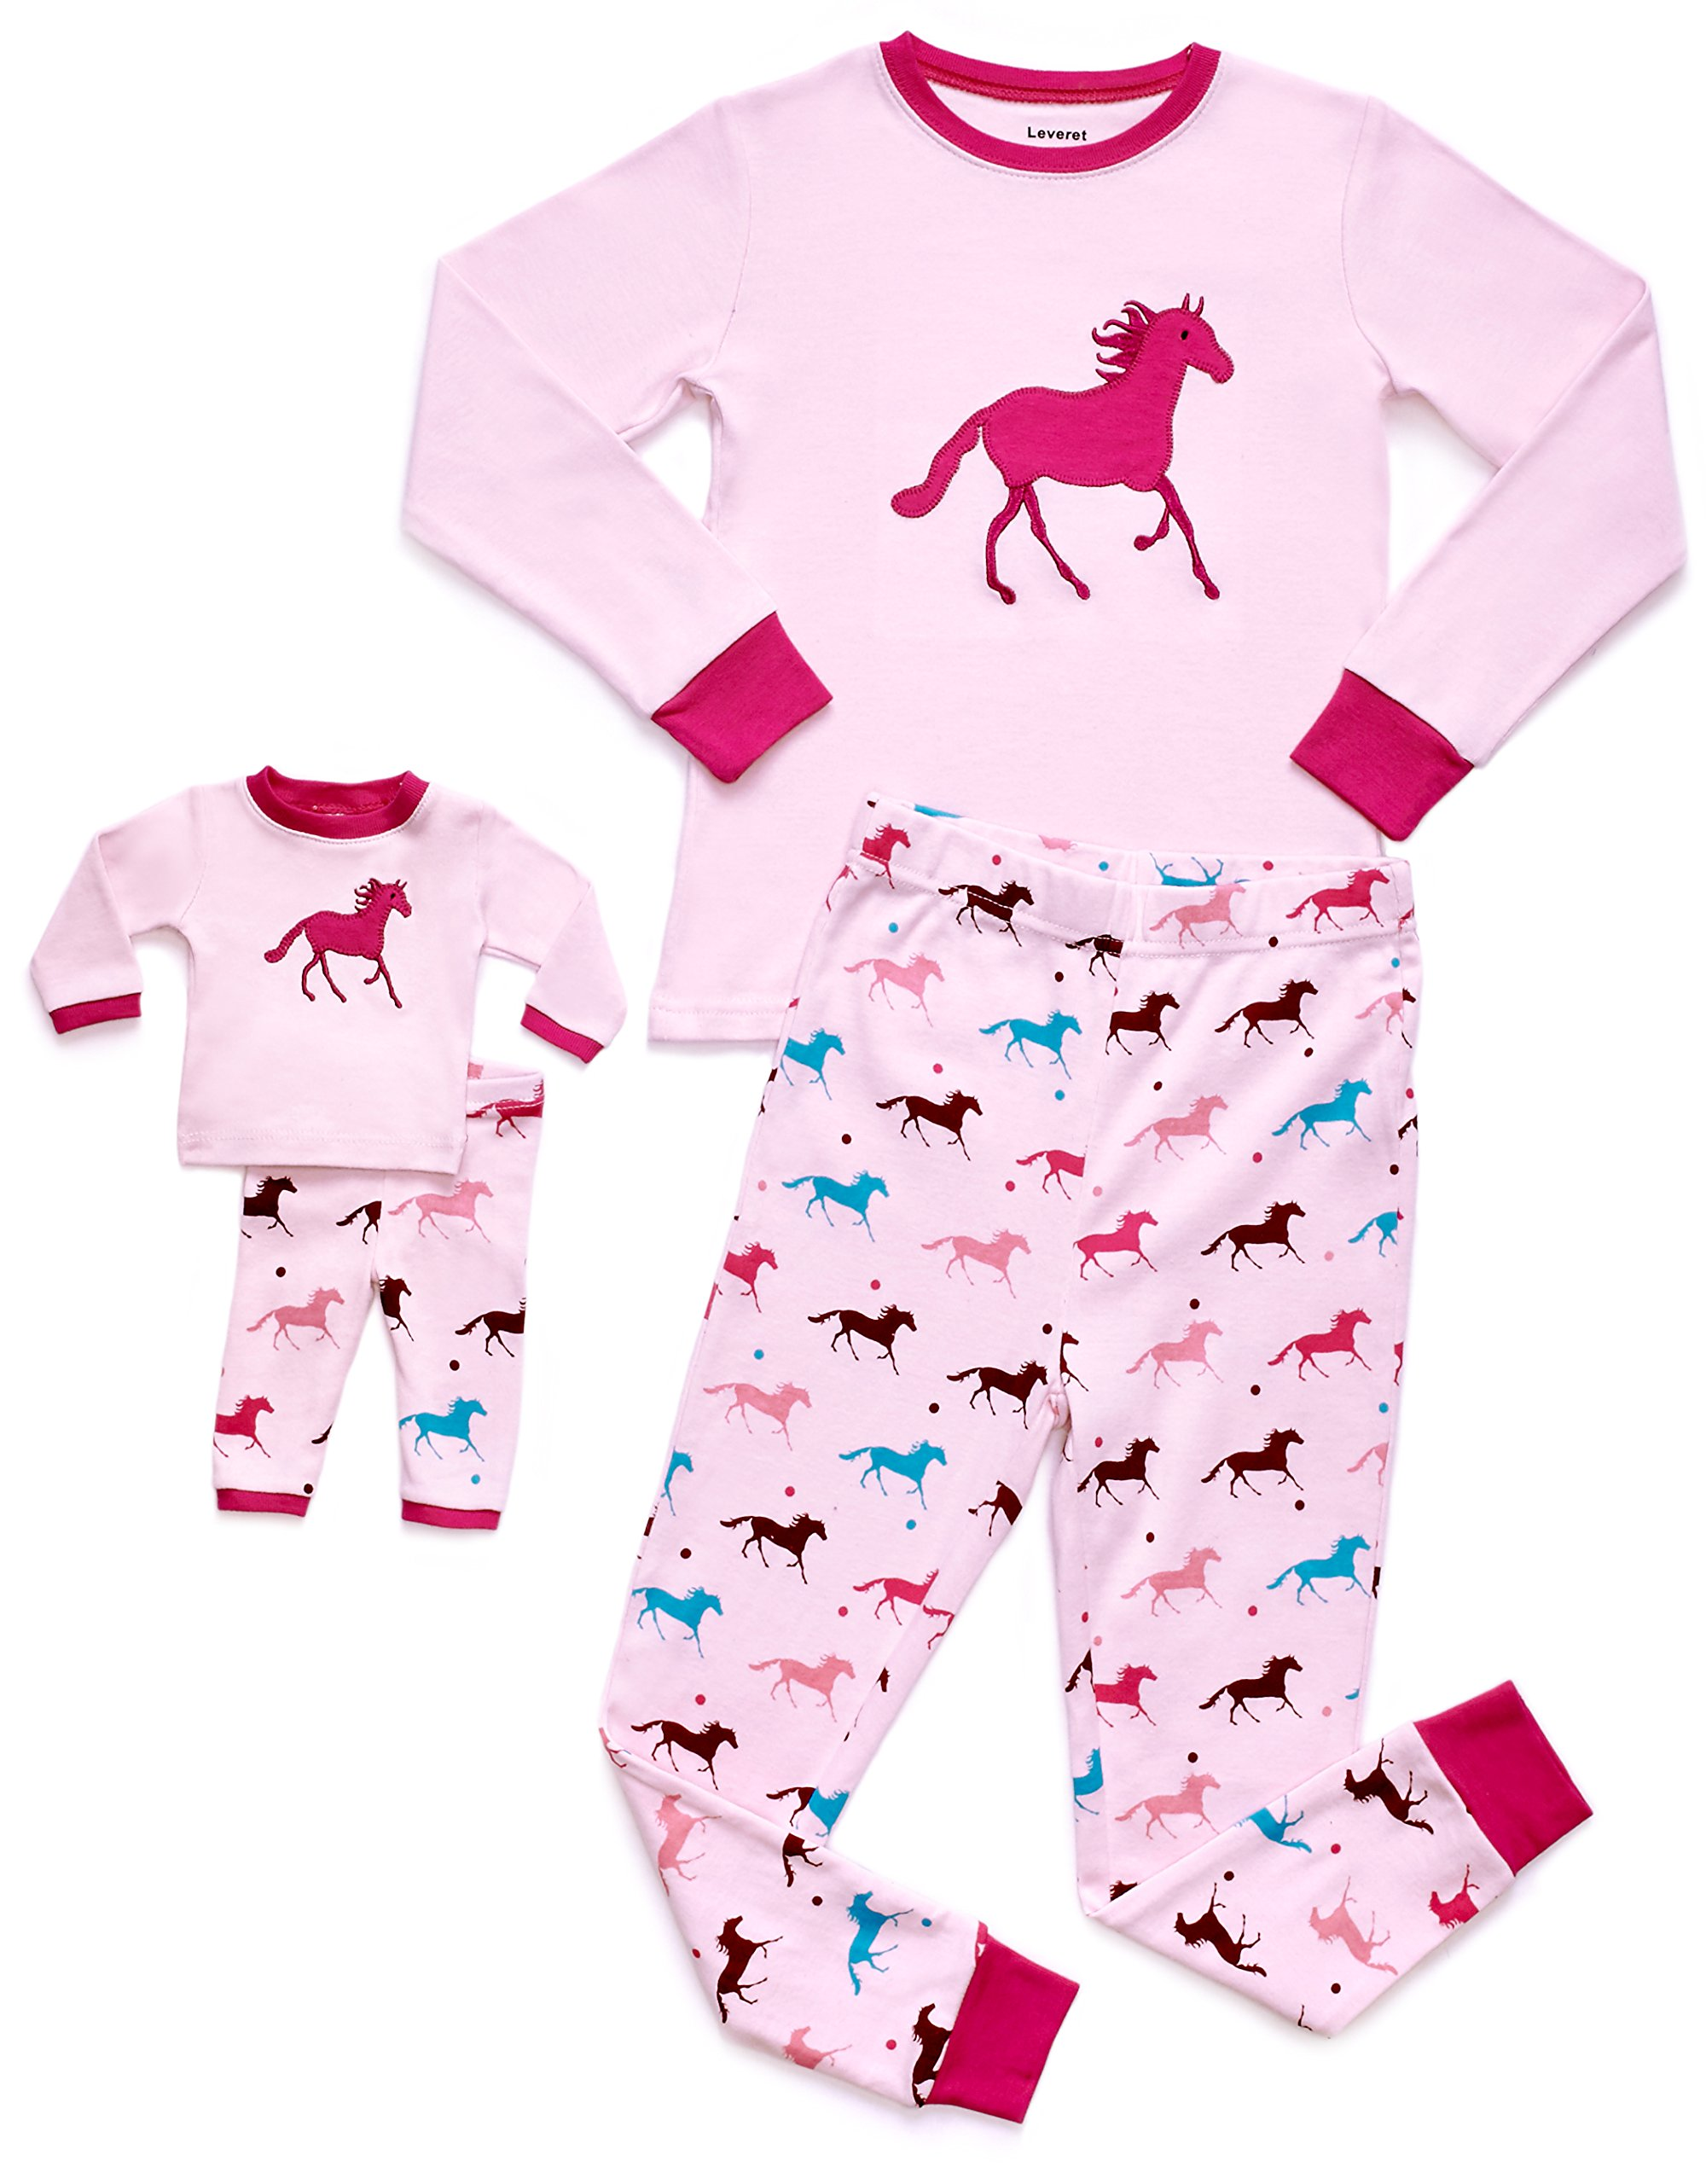 Leveret Horse Matching Doll & Girl 2 Piece Pajama Set 100% Cotton 8 Years